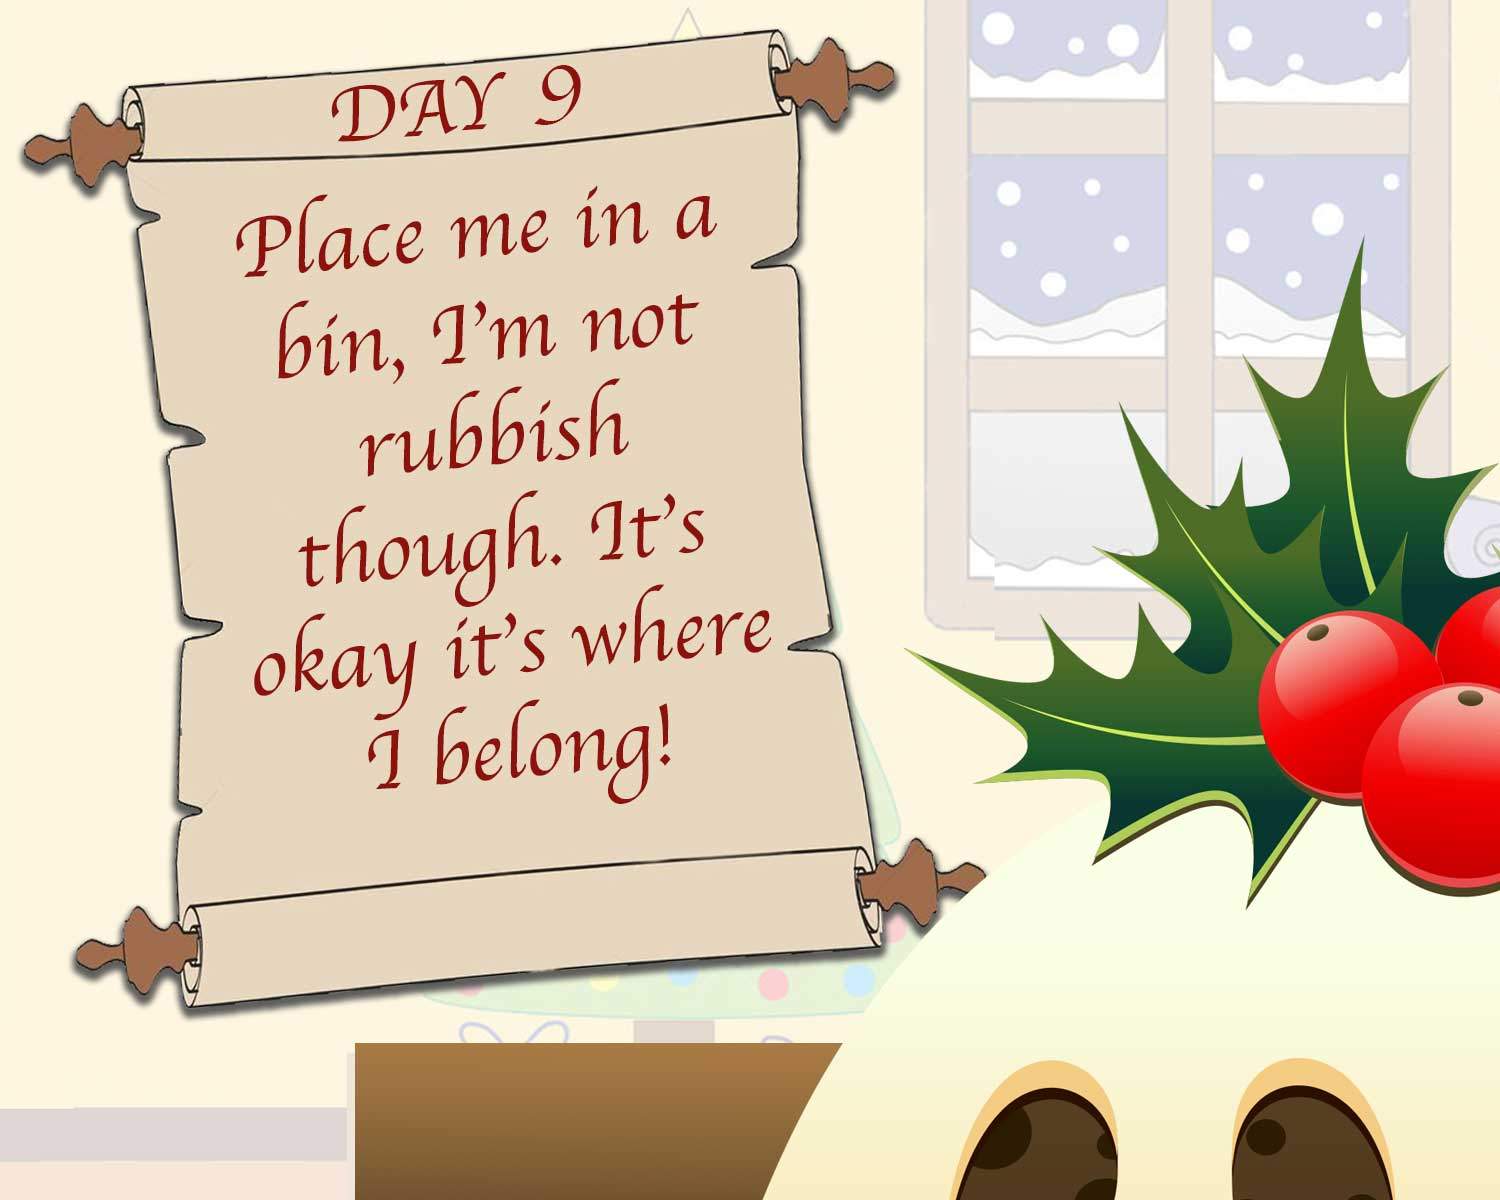 DAY 9 - THE GREAT CHRISTMAS PUDDING HUNT